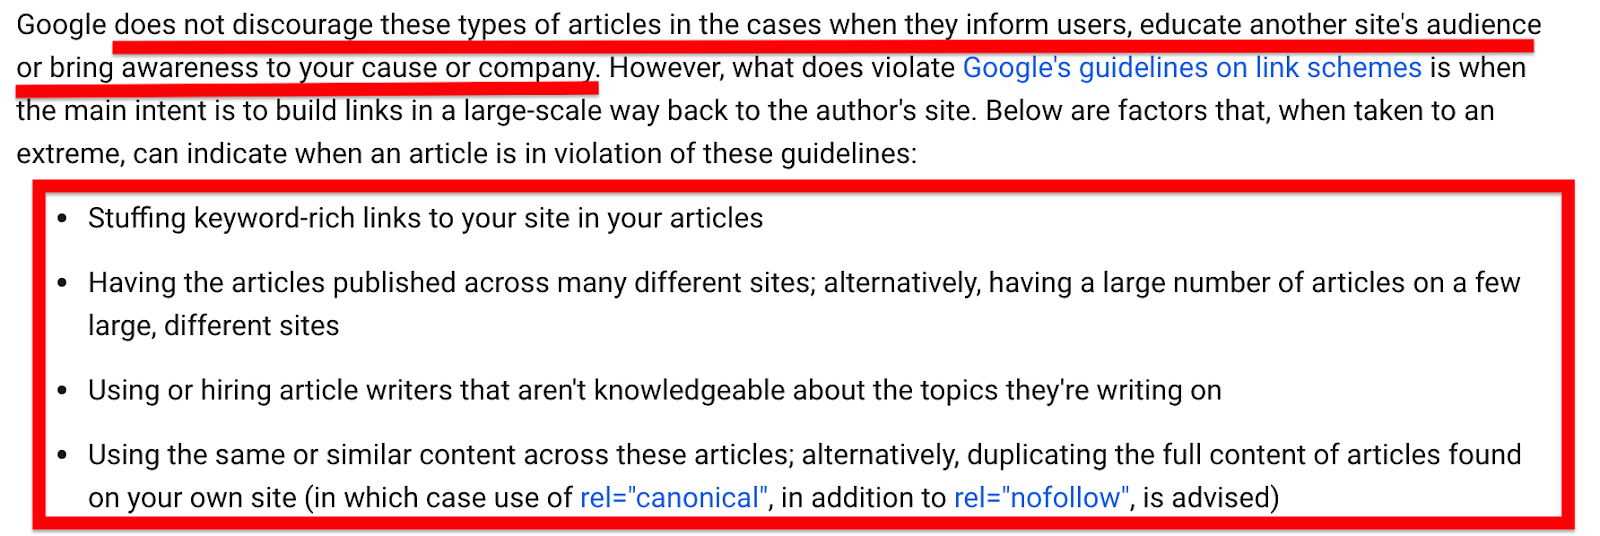 Google guidelines on guest posts